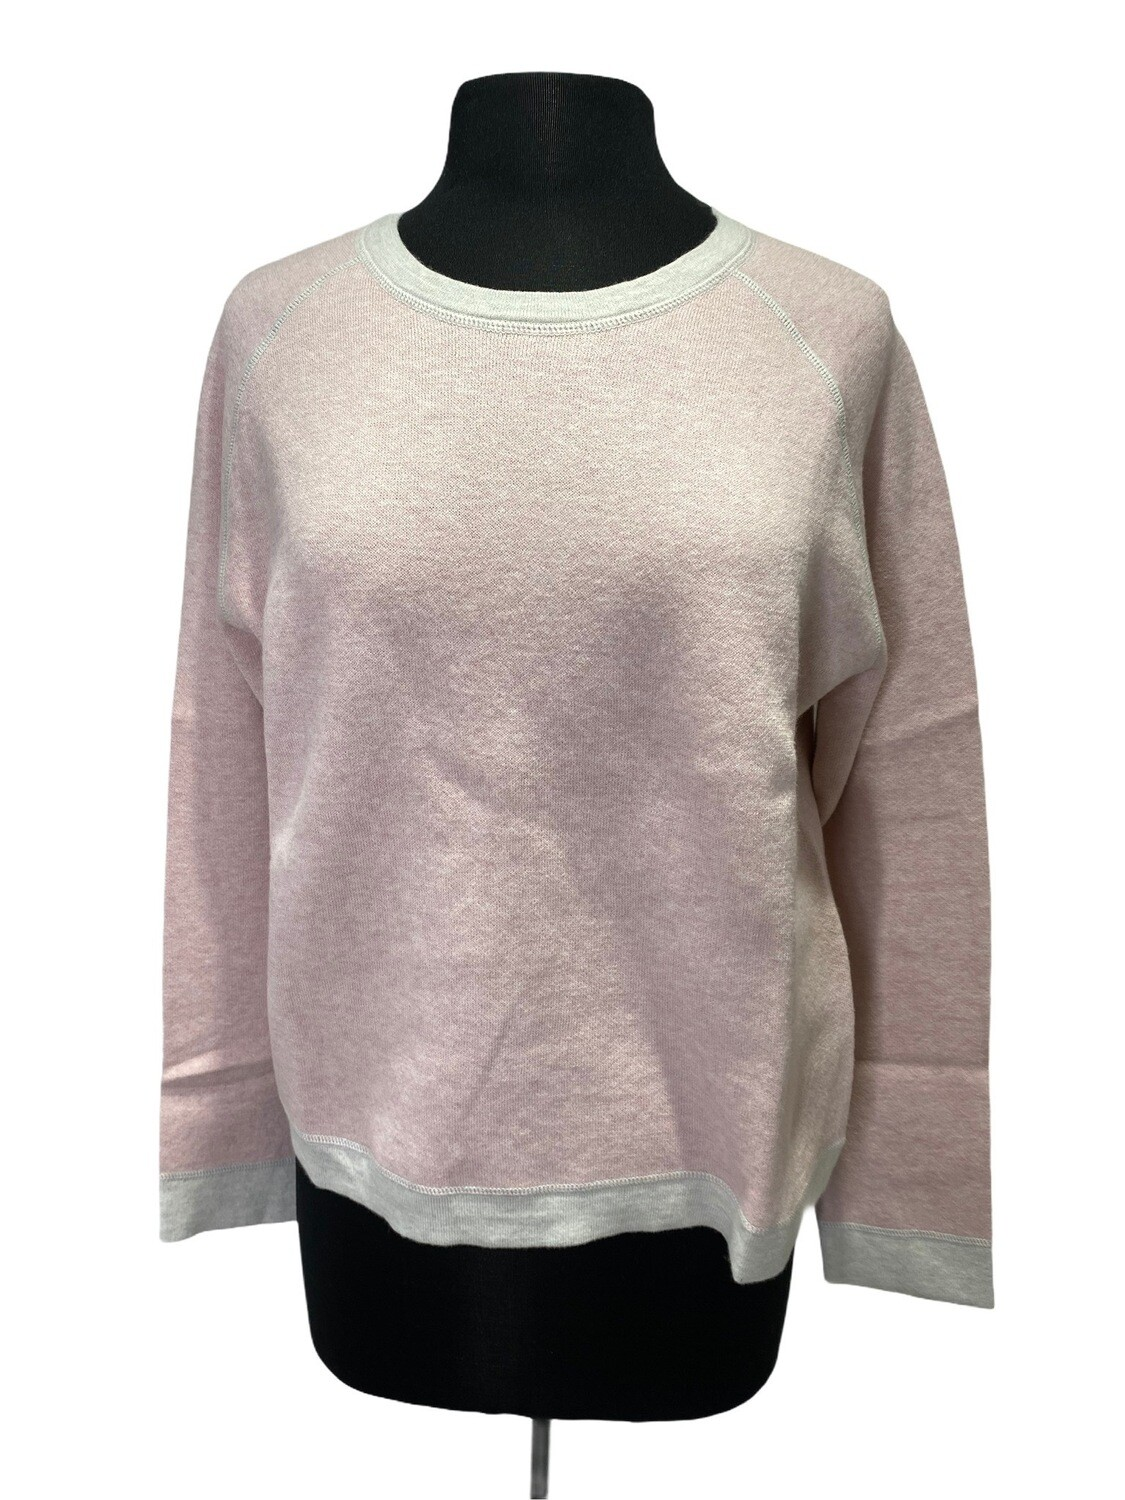 Kinross Cotton Cashmere Reversible Sweater Pink/Sand